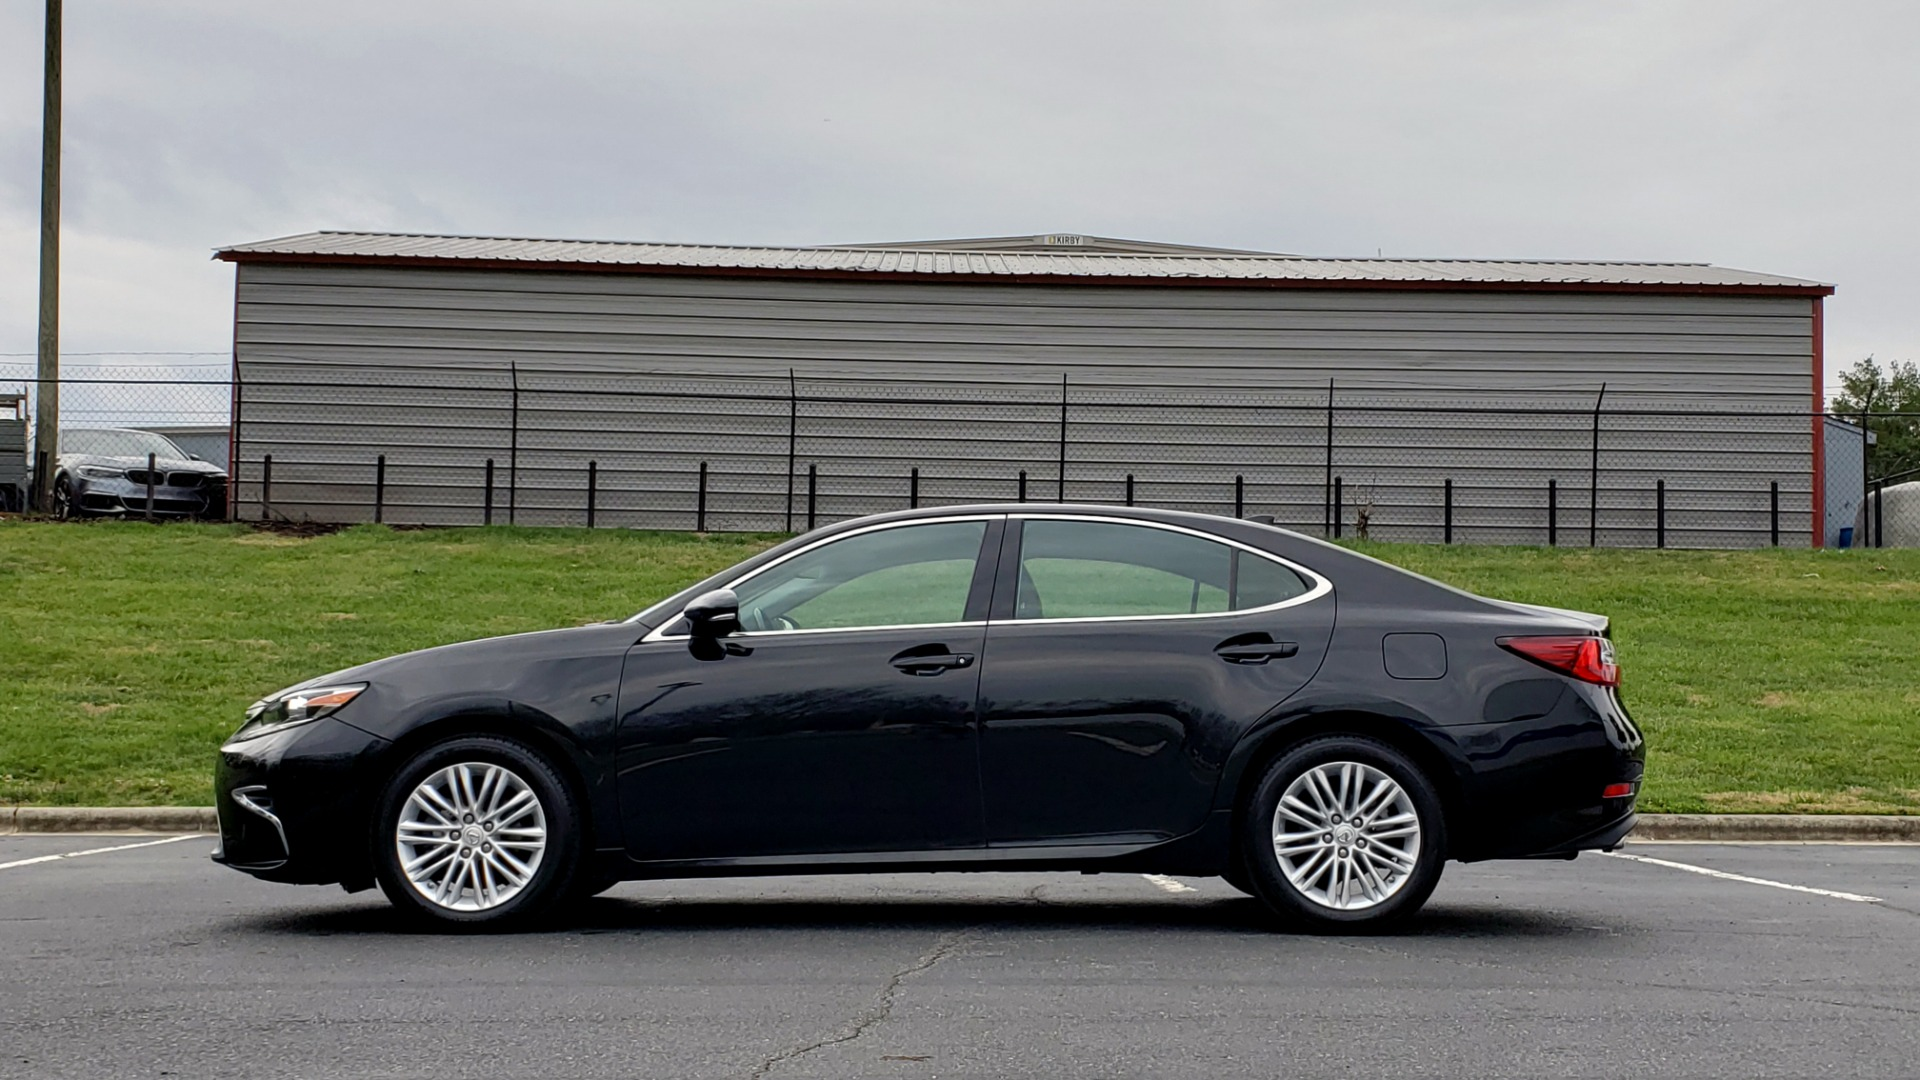 Used 2017 Lexus ES 350 PREMIUM / SUNROOF / PARK ASST / BSM / VENT SEATS / REARVIEW for sale Sold at Formula Imports in Charlotte NC 28227 2